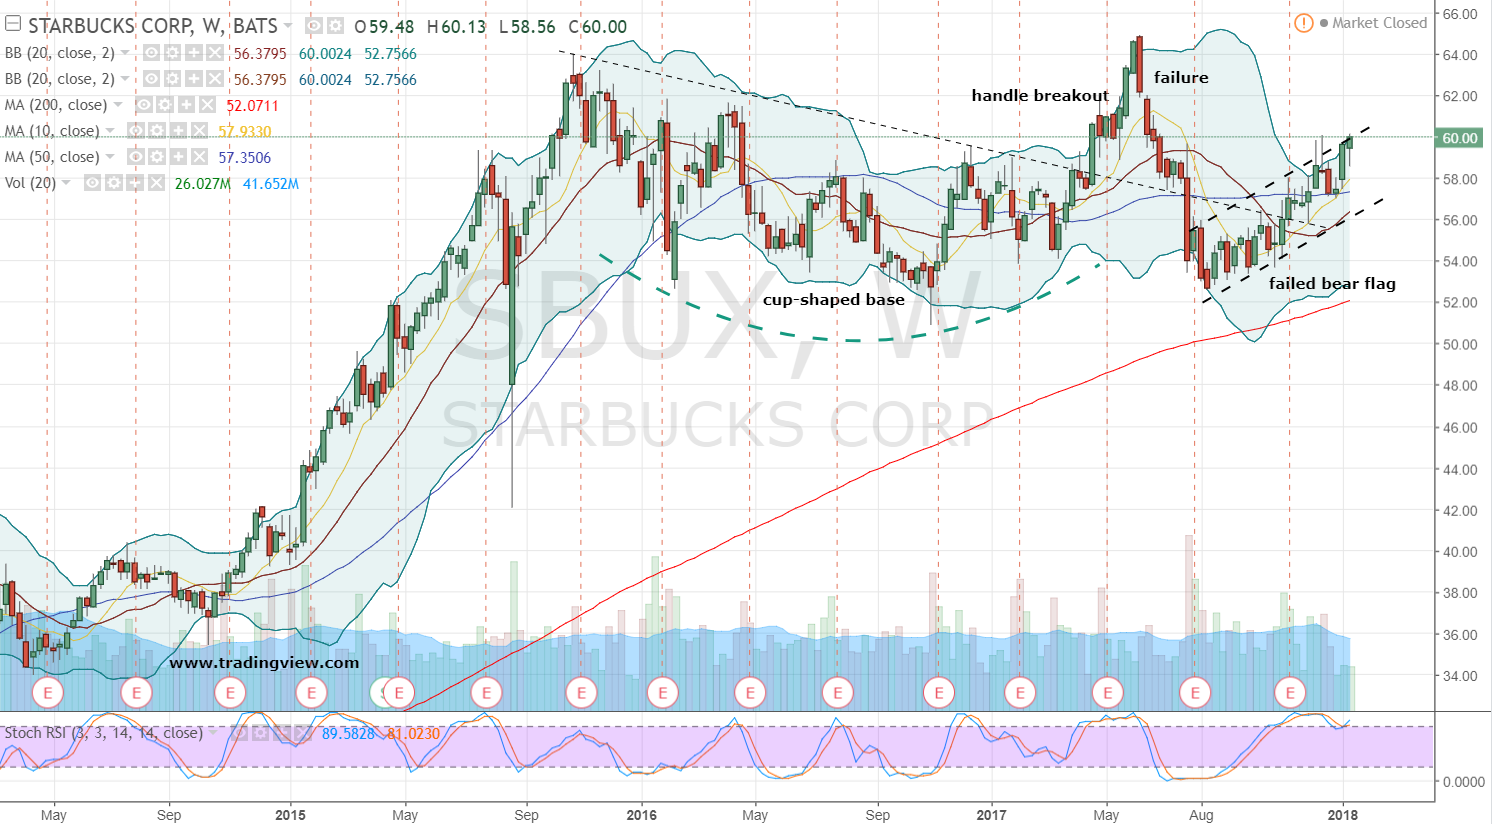 Murphy Capital Management Inc. Acquires 2460 Shares of Starbucks Co. (SBUX)